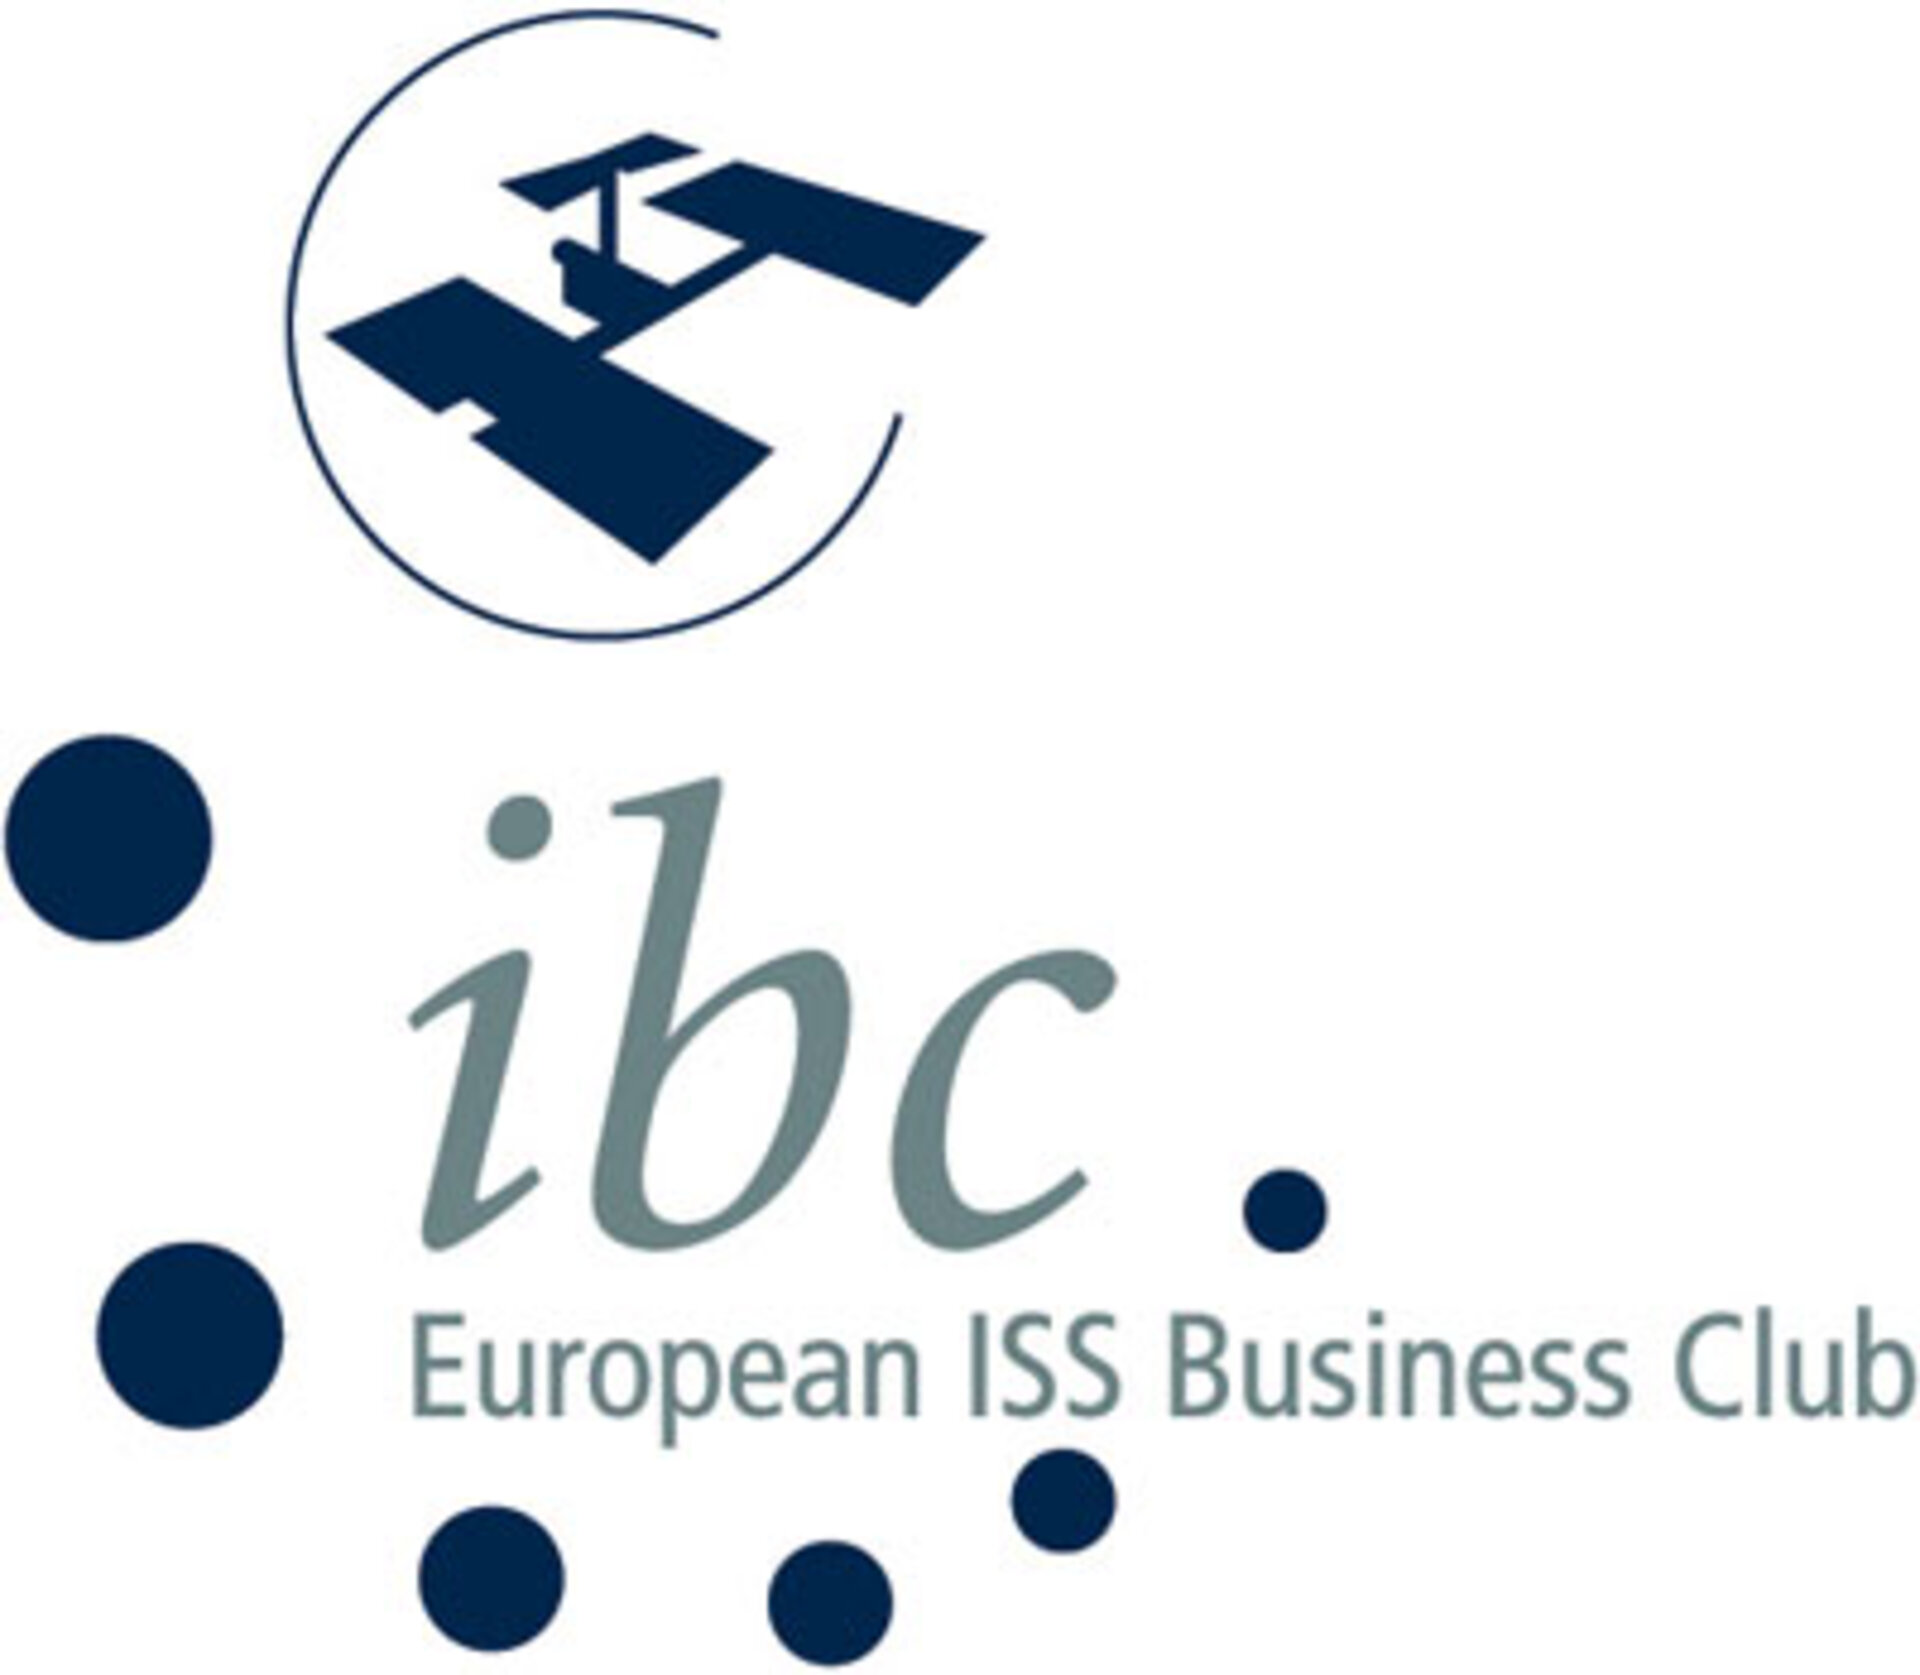 European ISS Business Club logo